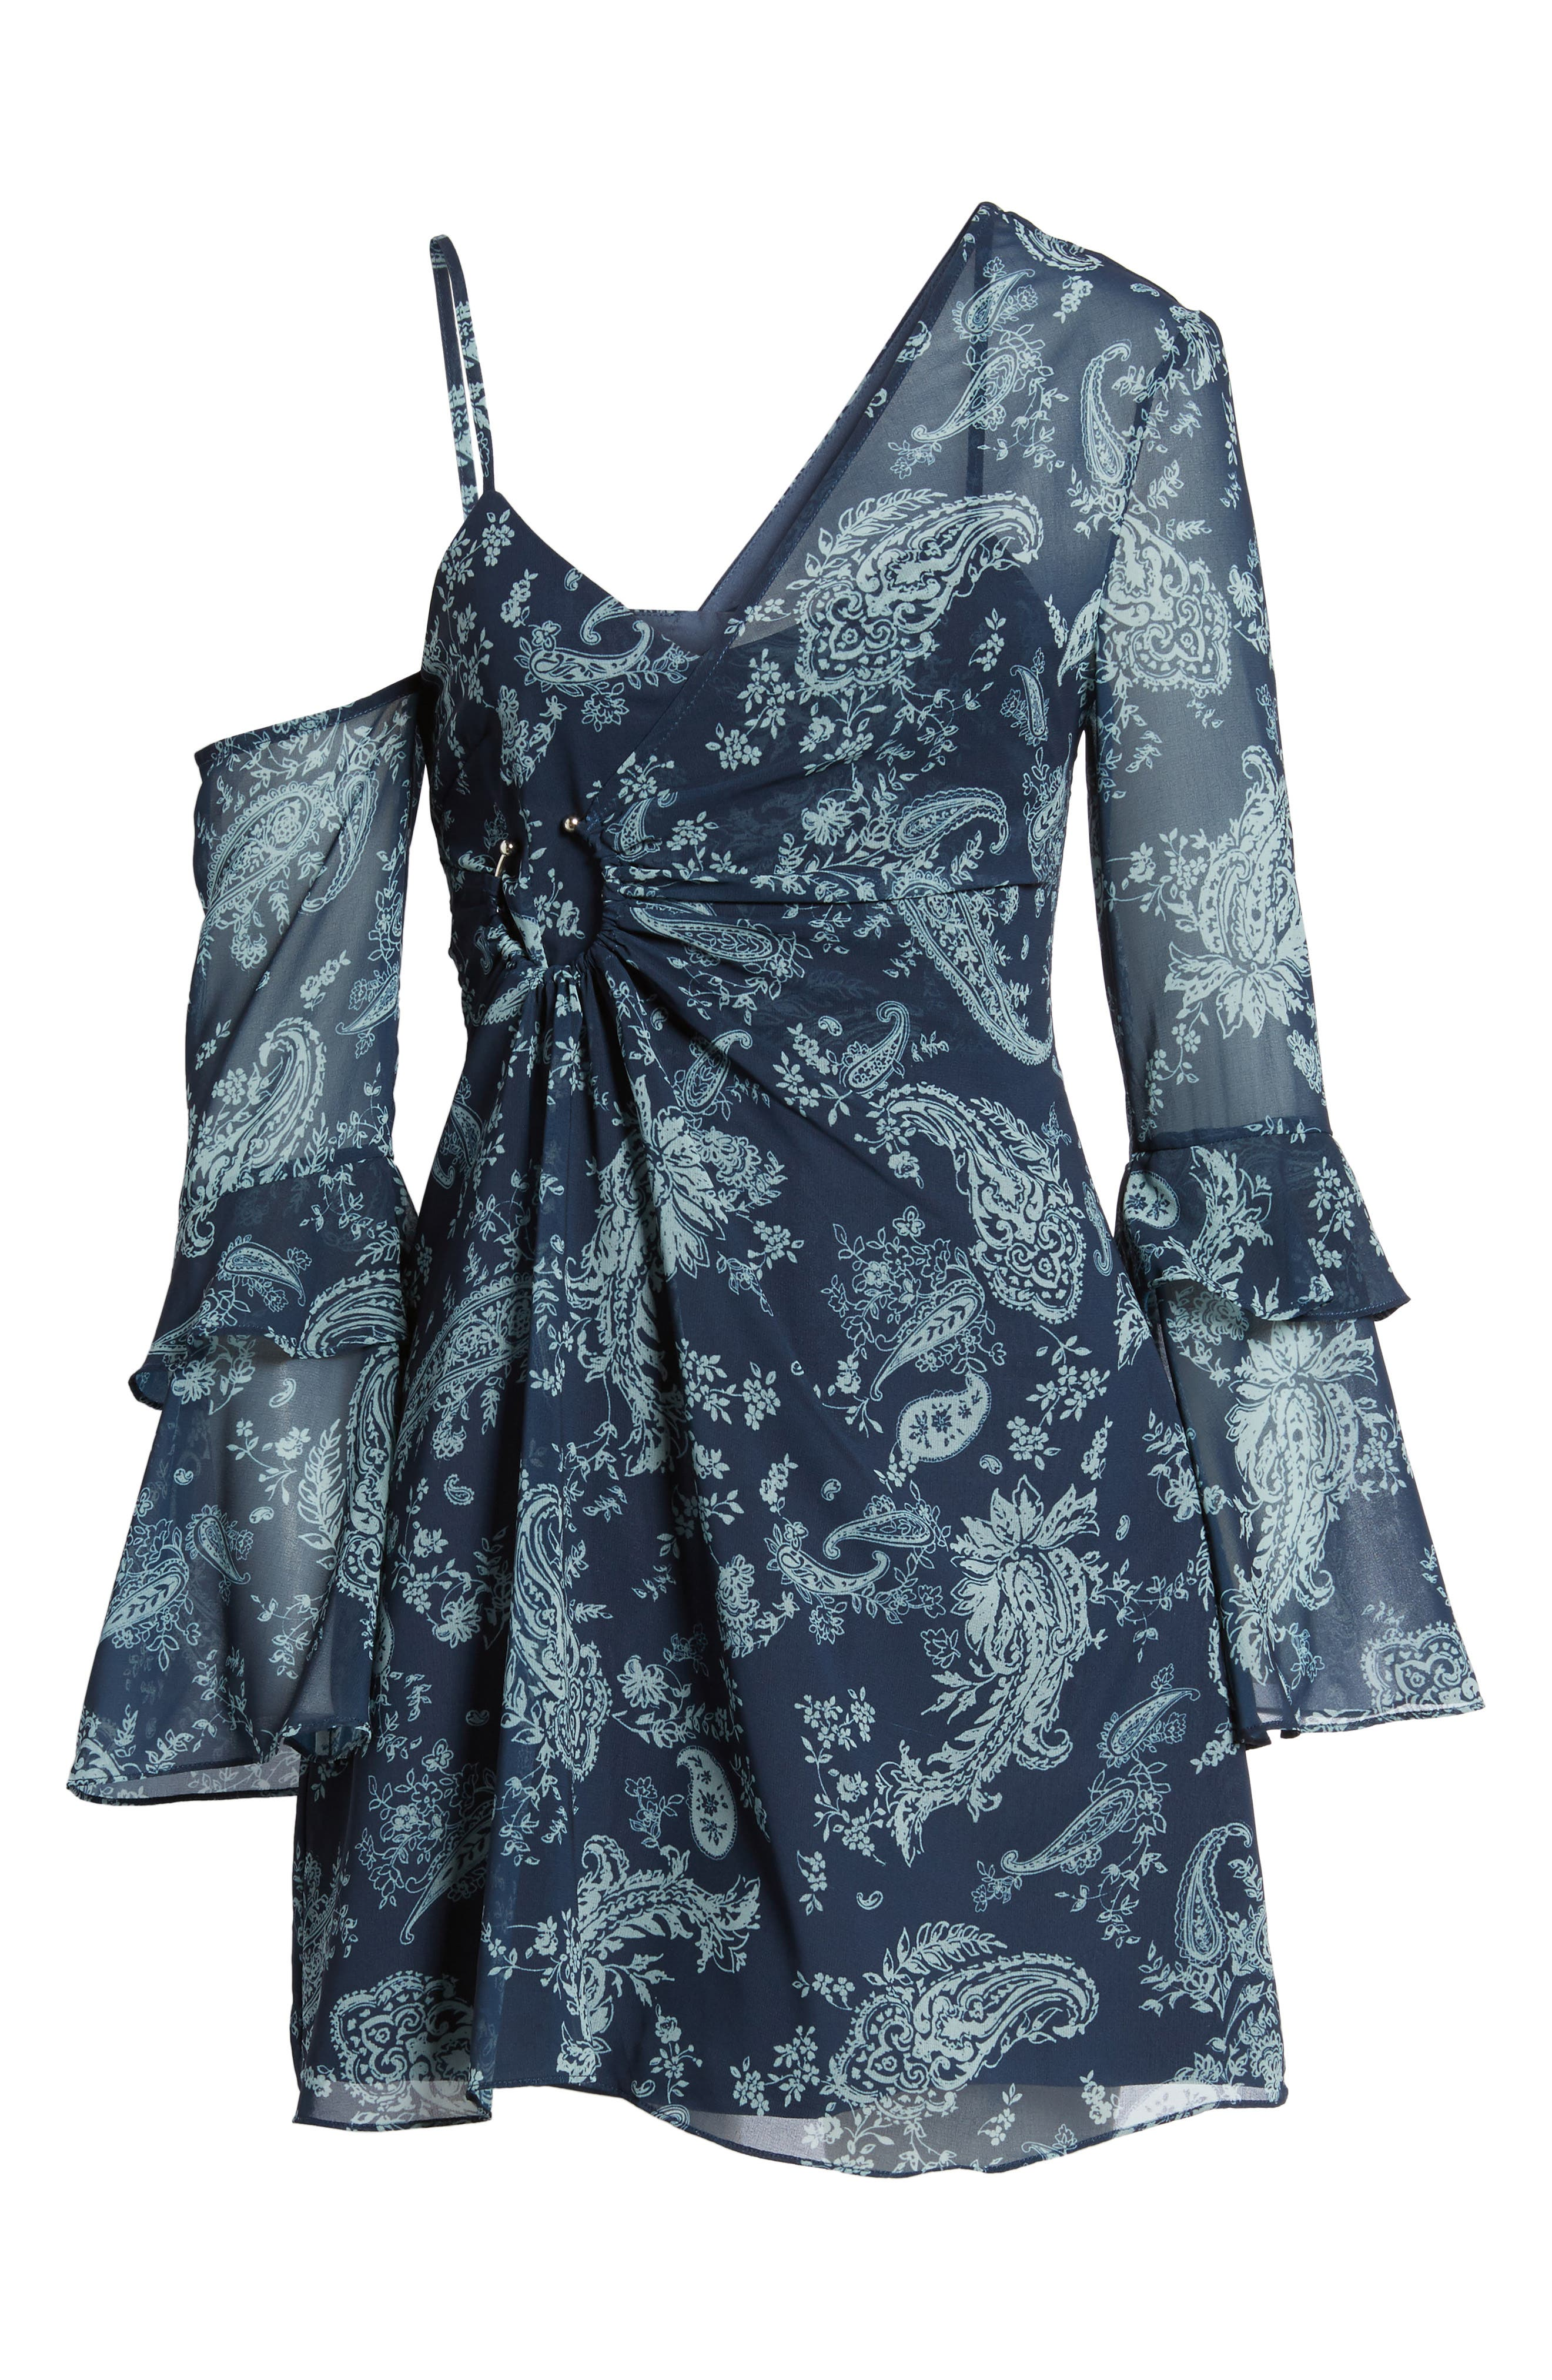 Go With It Minidress,                             Alternate thumbnail 6, color,                             Navy Paisley